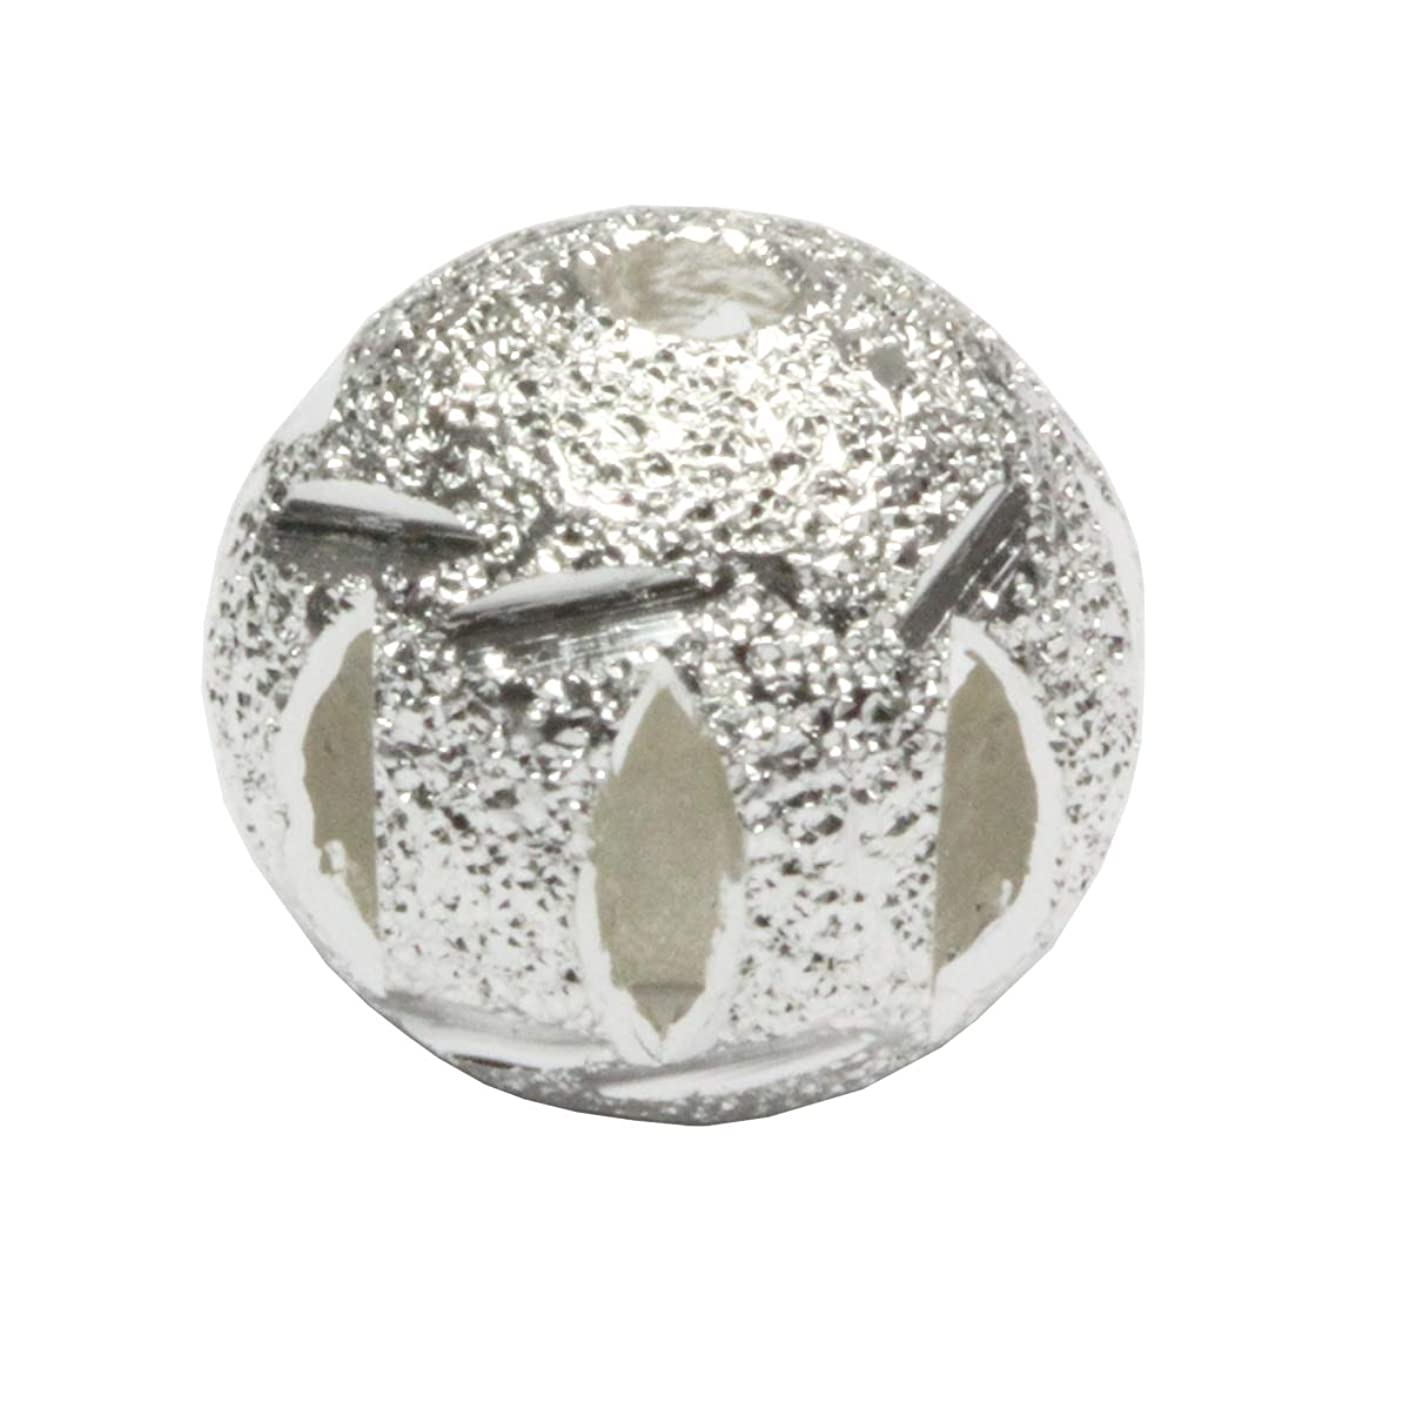 200pcs Top Quality 10mm Artistic Filigree Round Spacer Beads Sterling Silver Plated Brass Metal for Jewelry Craft Making CF18-10